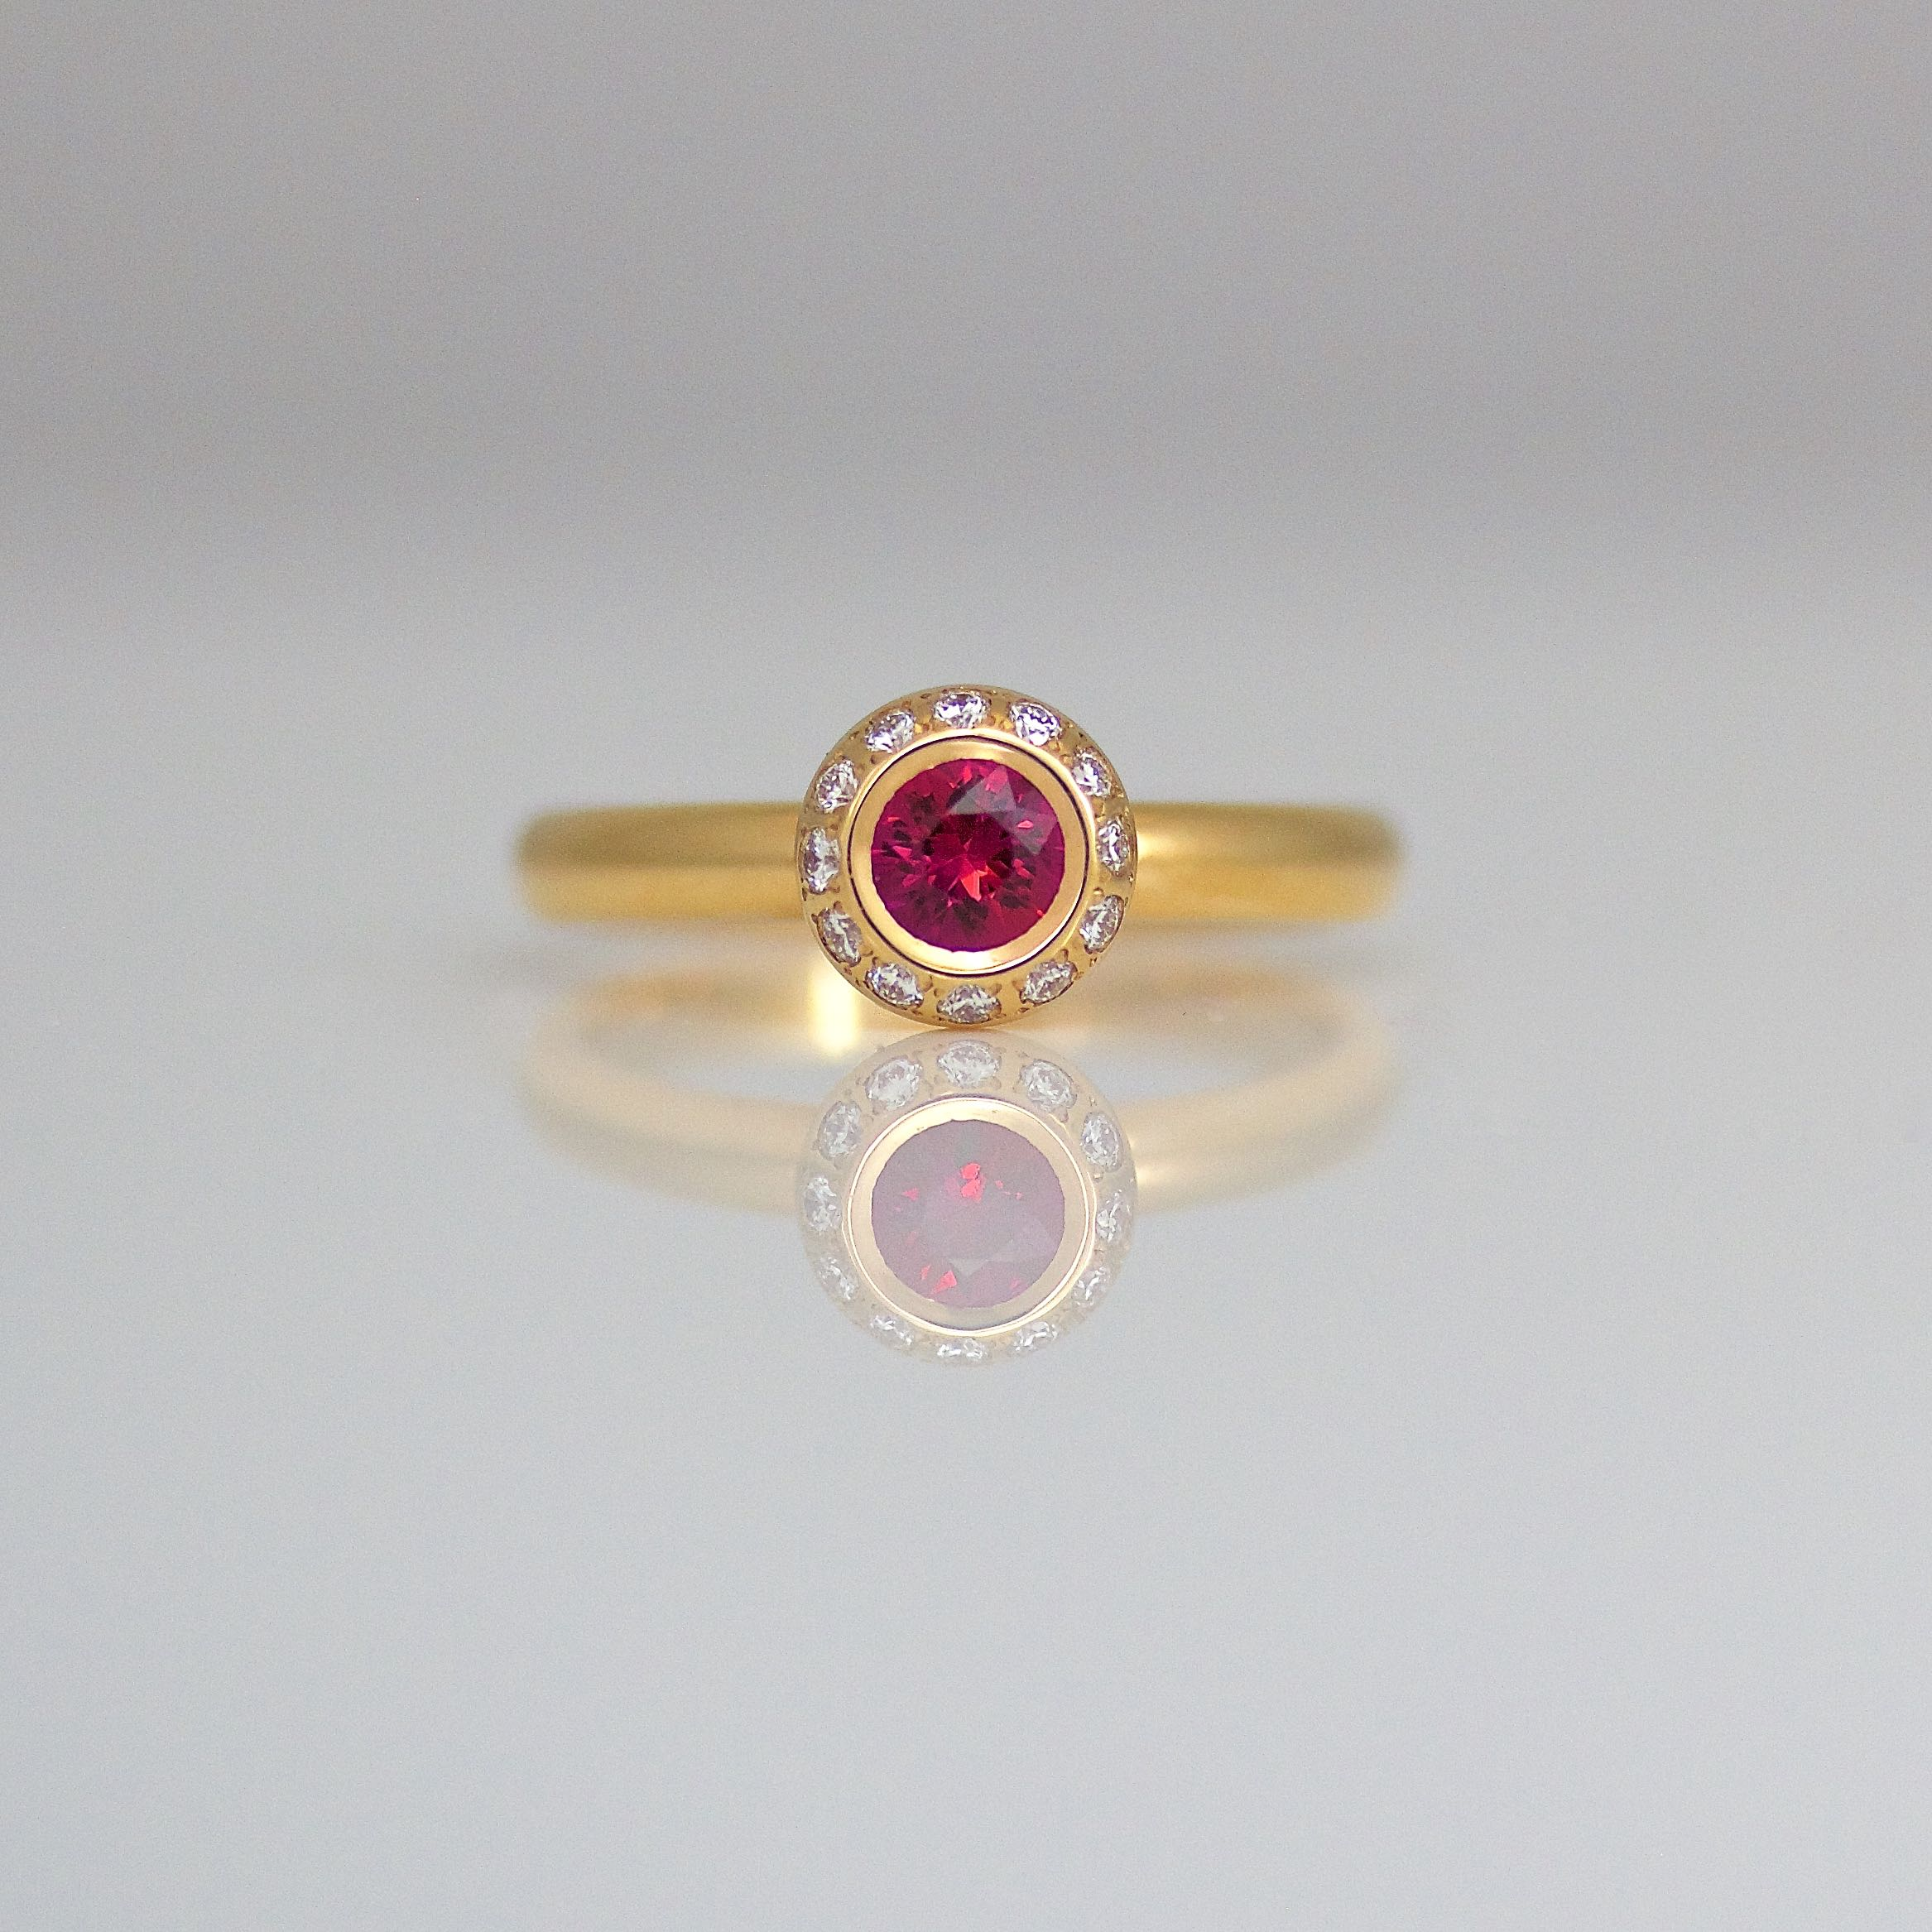 Rose Gold Ruby And Diamond Ring The Finest Jewellery Handmade In London  Bespoke